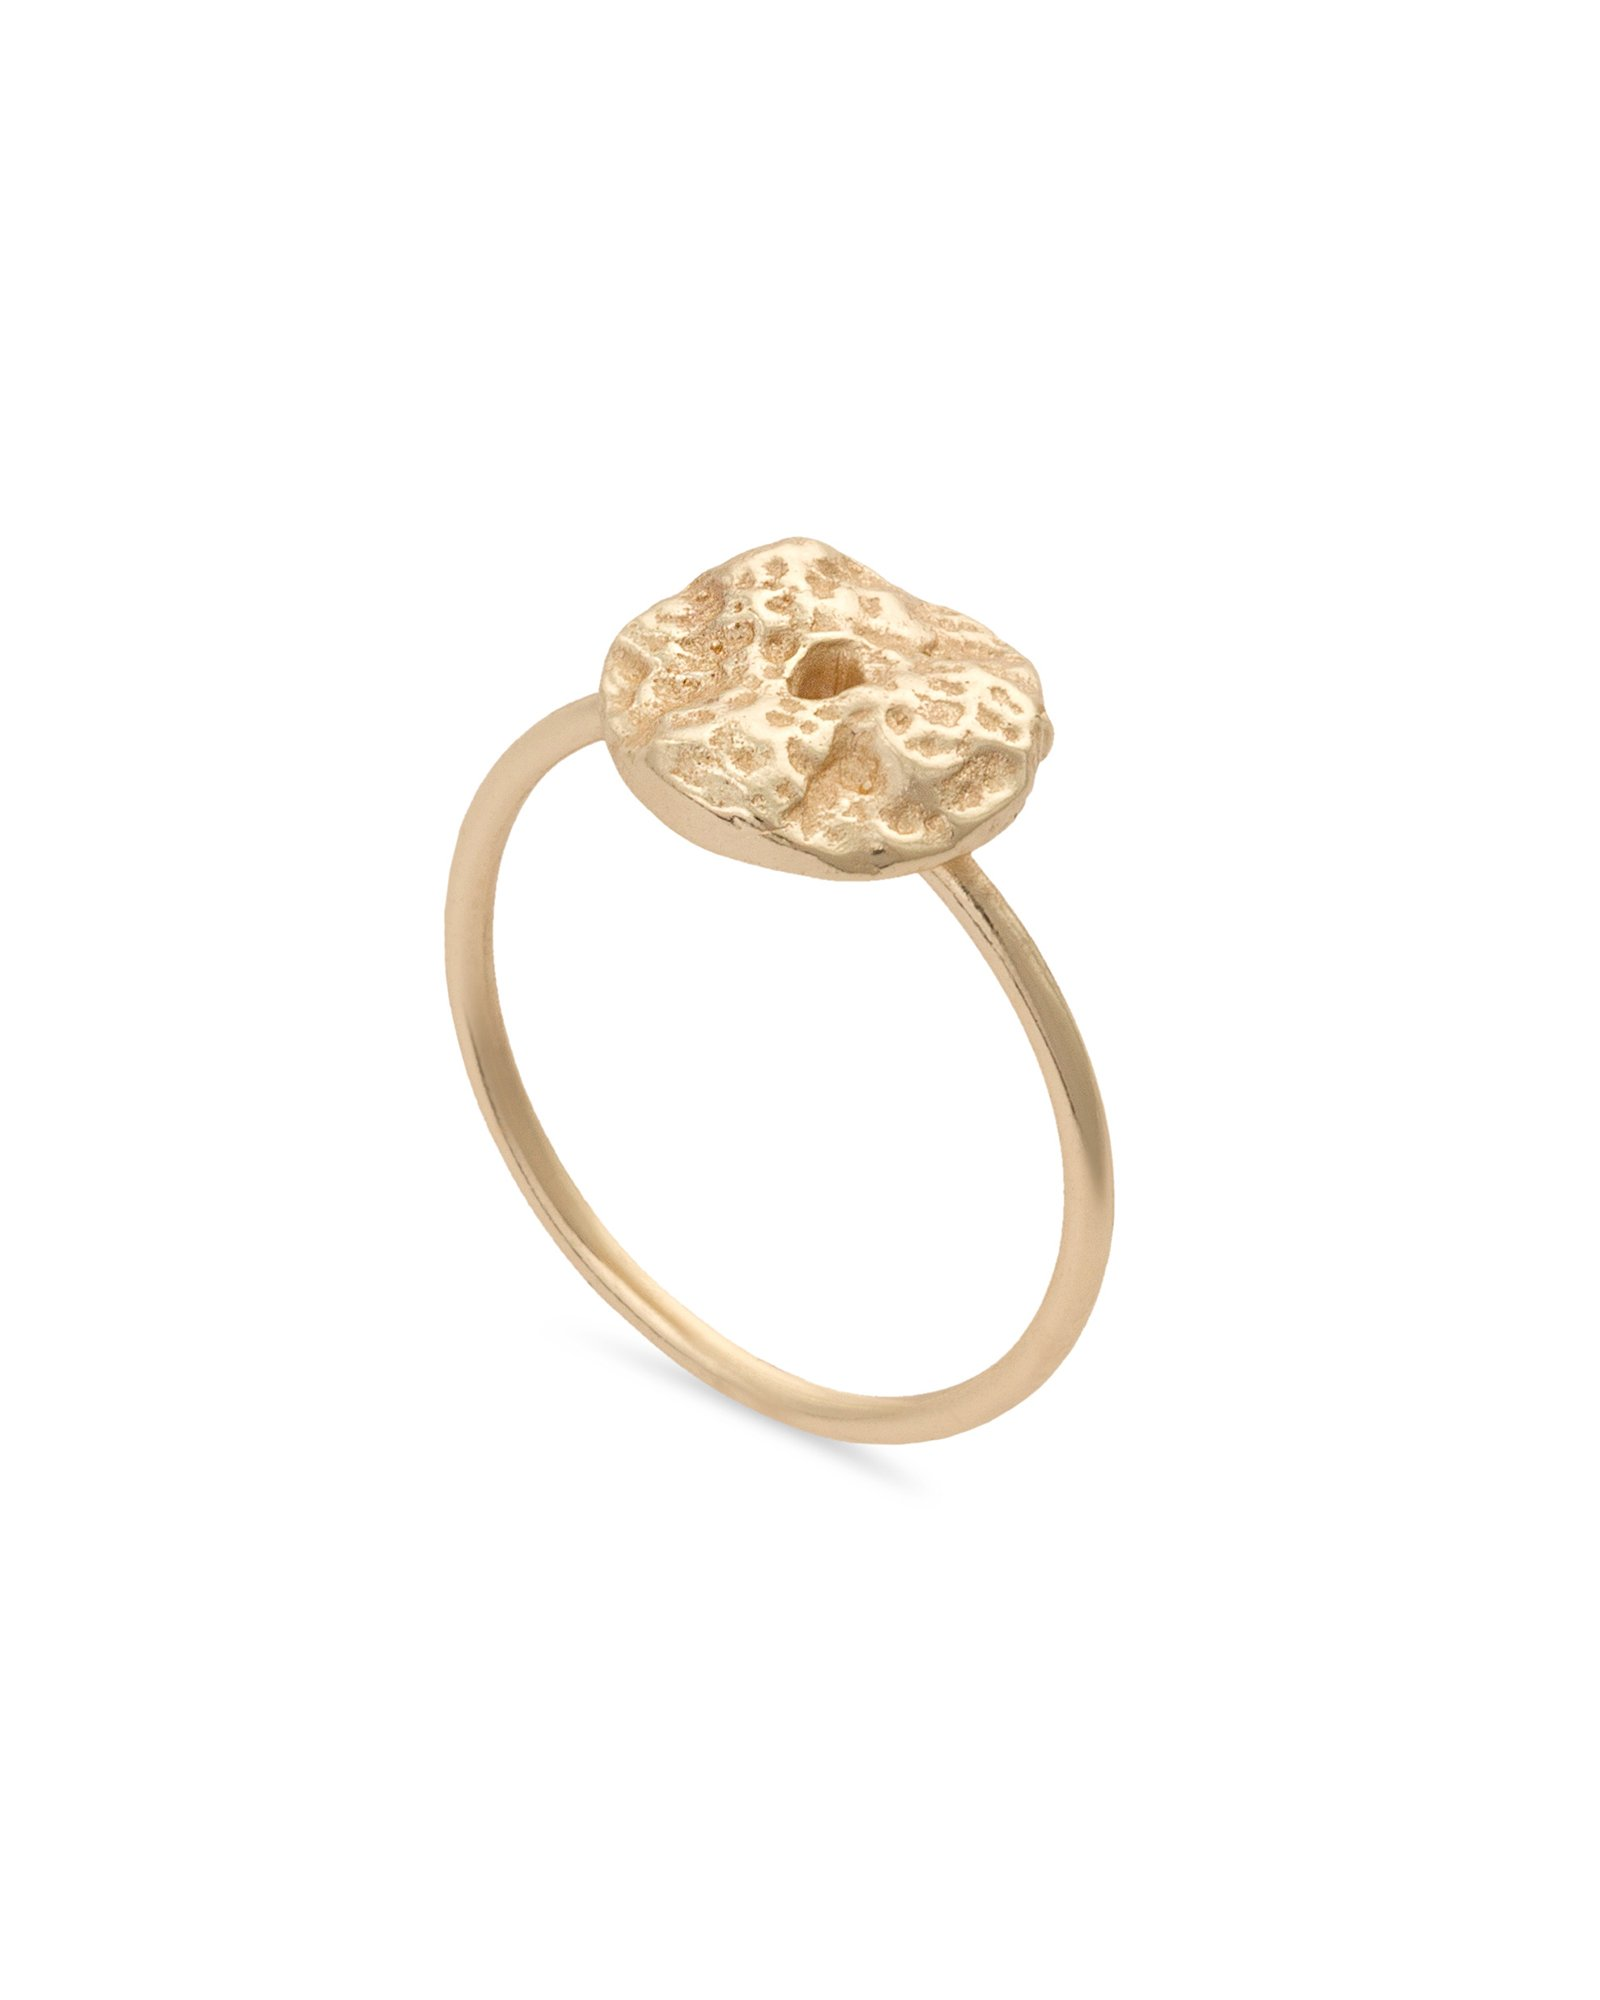 48f4dd752f Ciolli Textured Coin Gold Plated Ring | Oliver Bonas